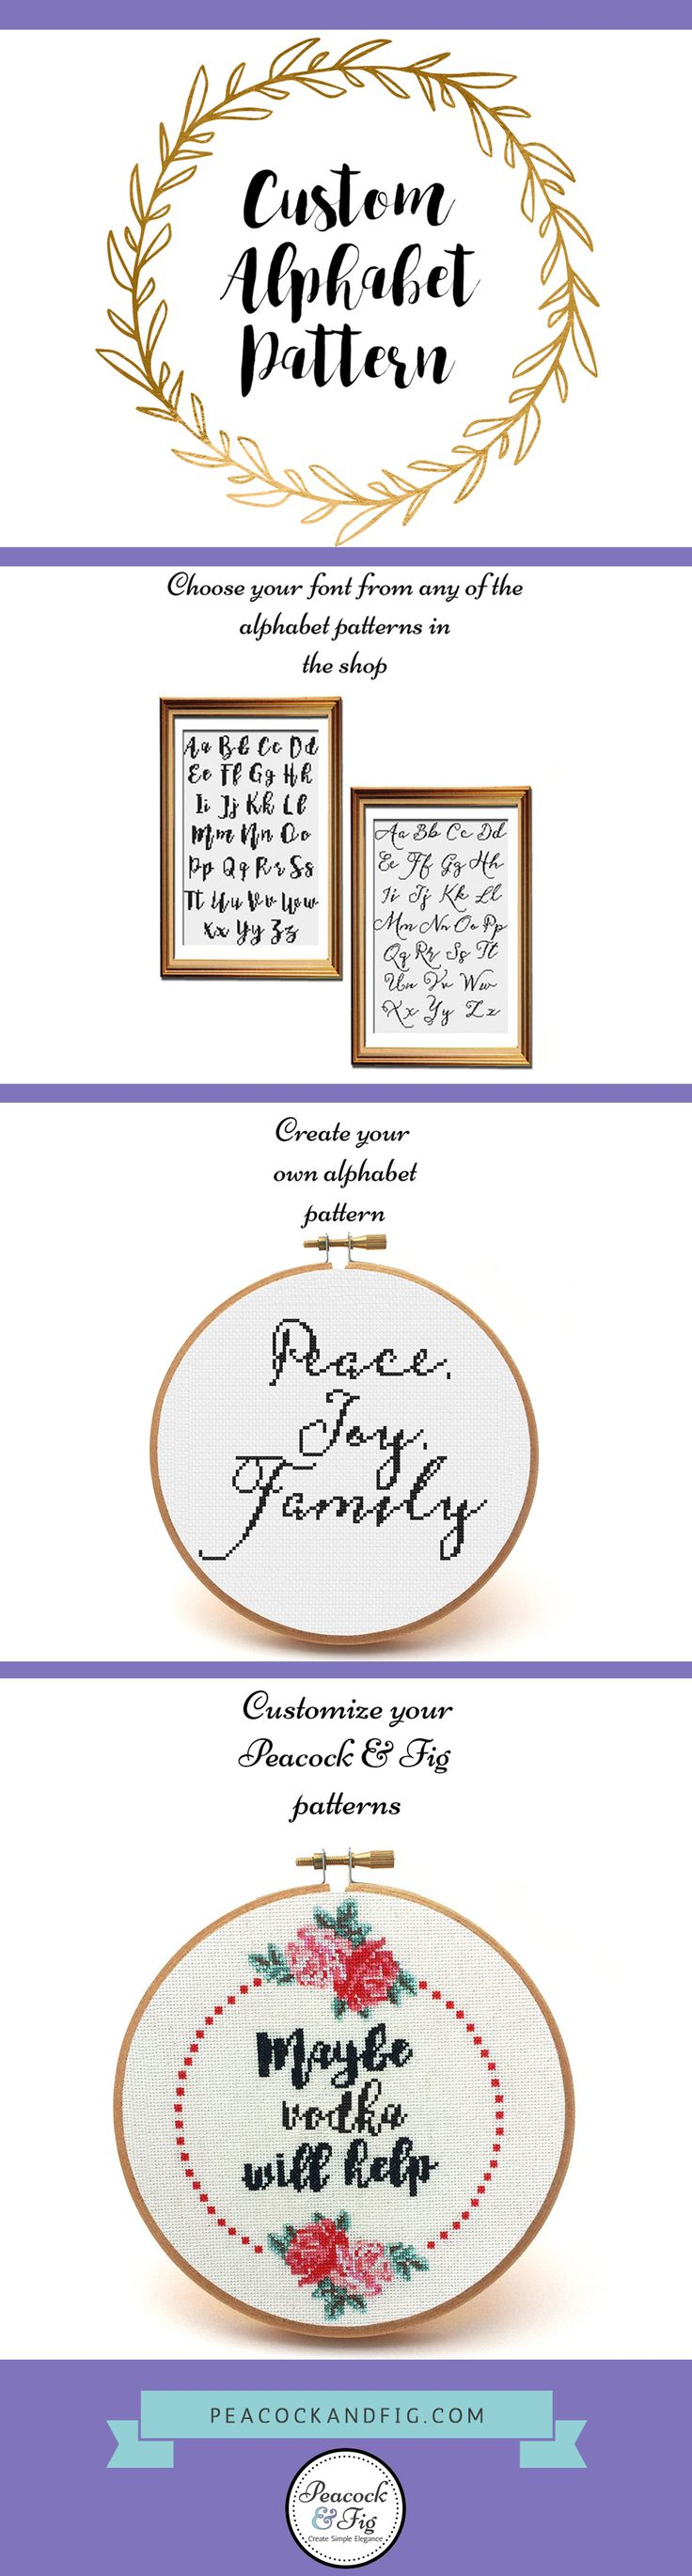 Cross Stitch Alphabets -- custom cross stitch pattern -- customized cross stitch